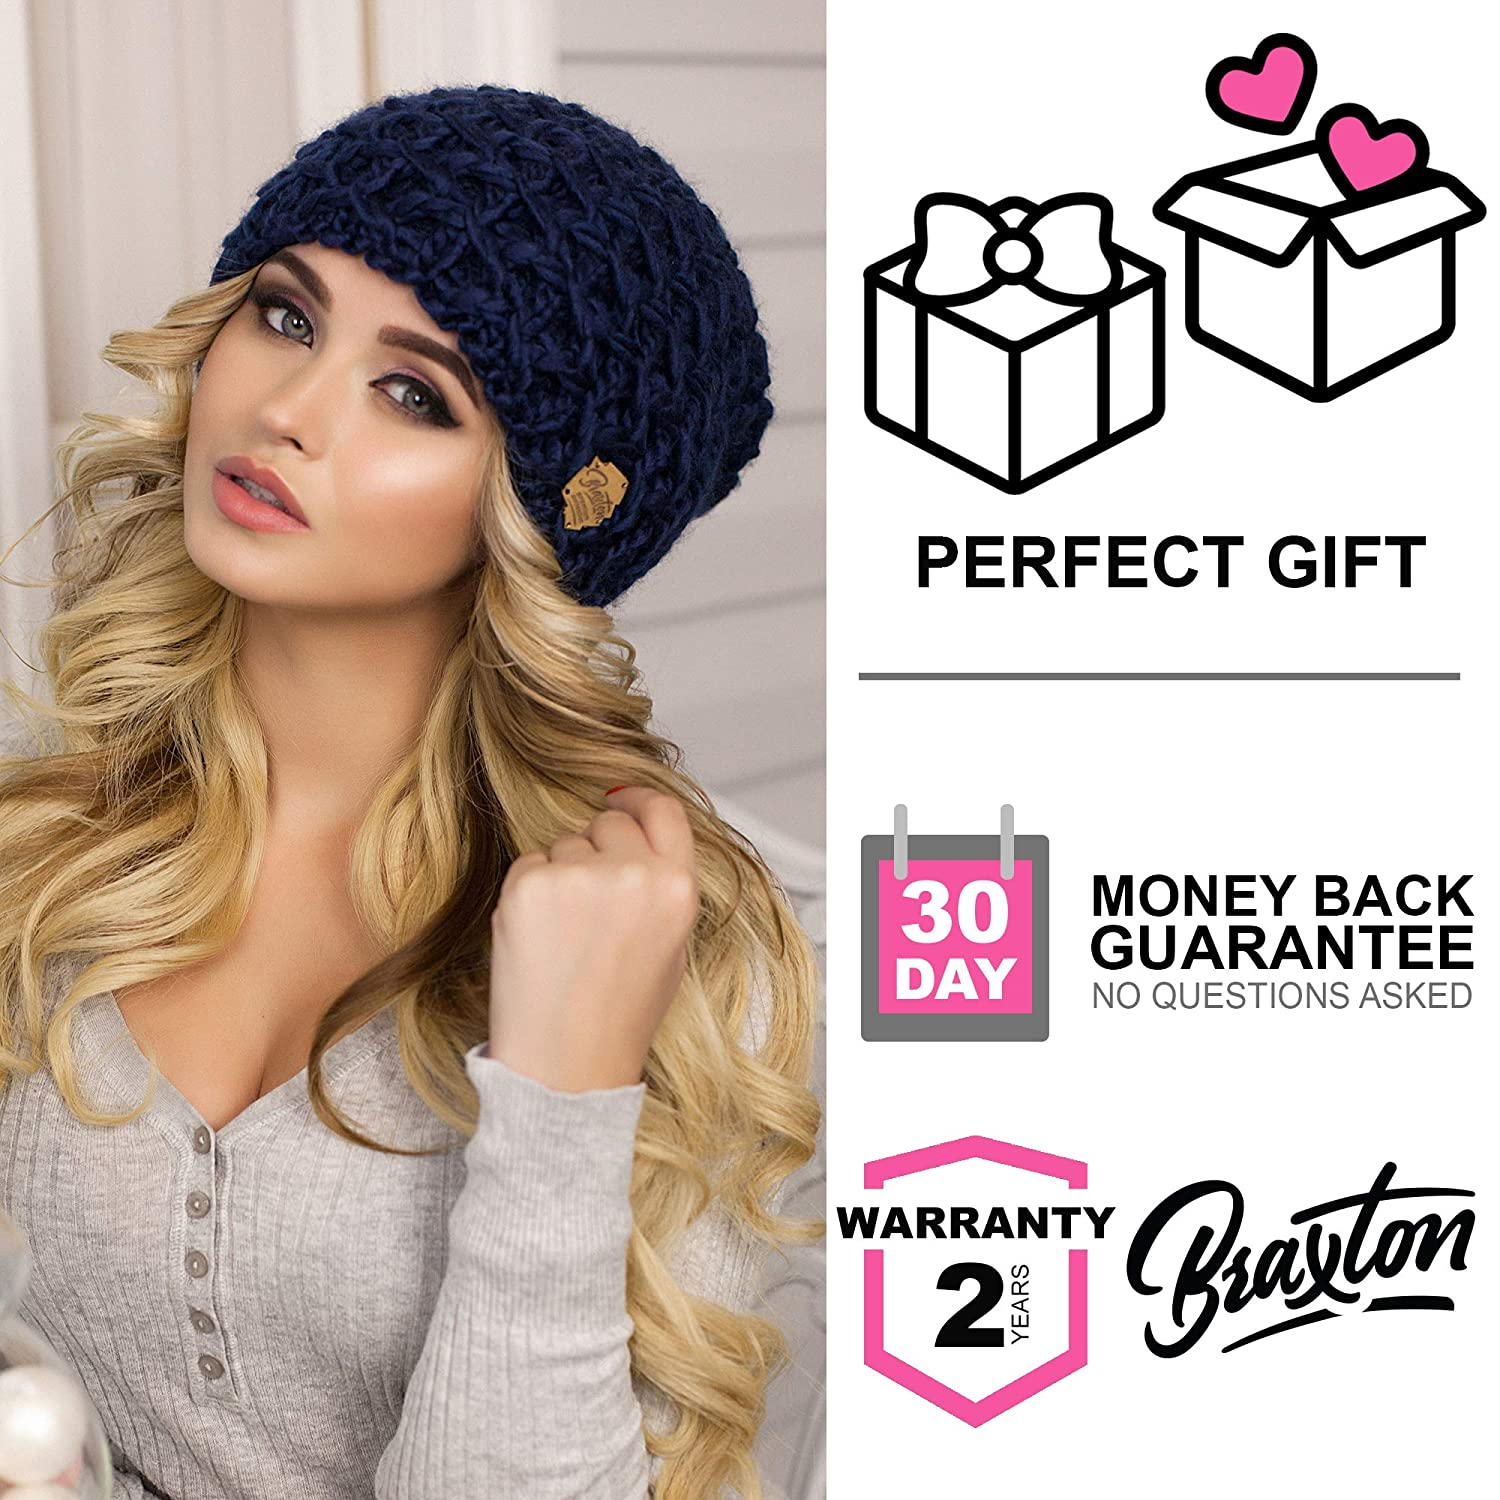 eb89add3f13 Braxton Slouchy Beanie for Women - Ski Cable Knit Winter Warm Large Hat -  Wool Snow Outdoor Cap XL at Amazon Women s Clothing store